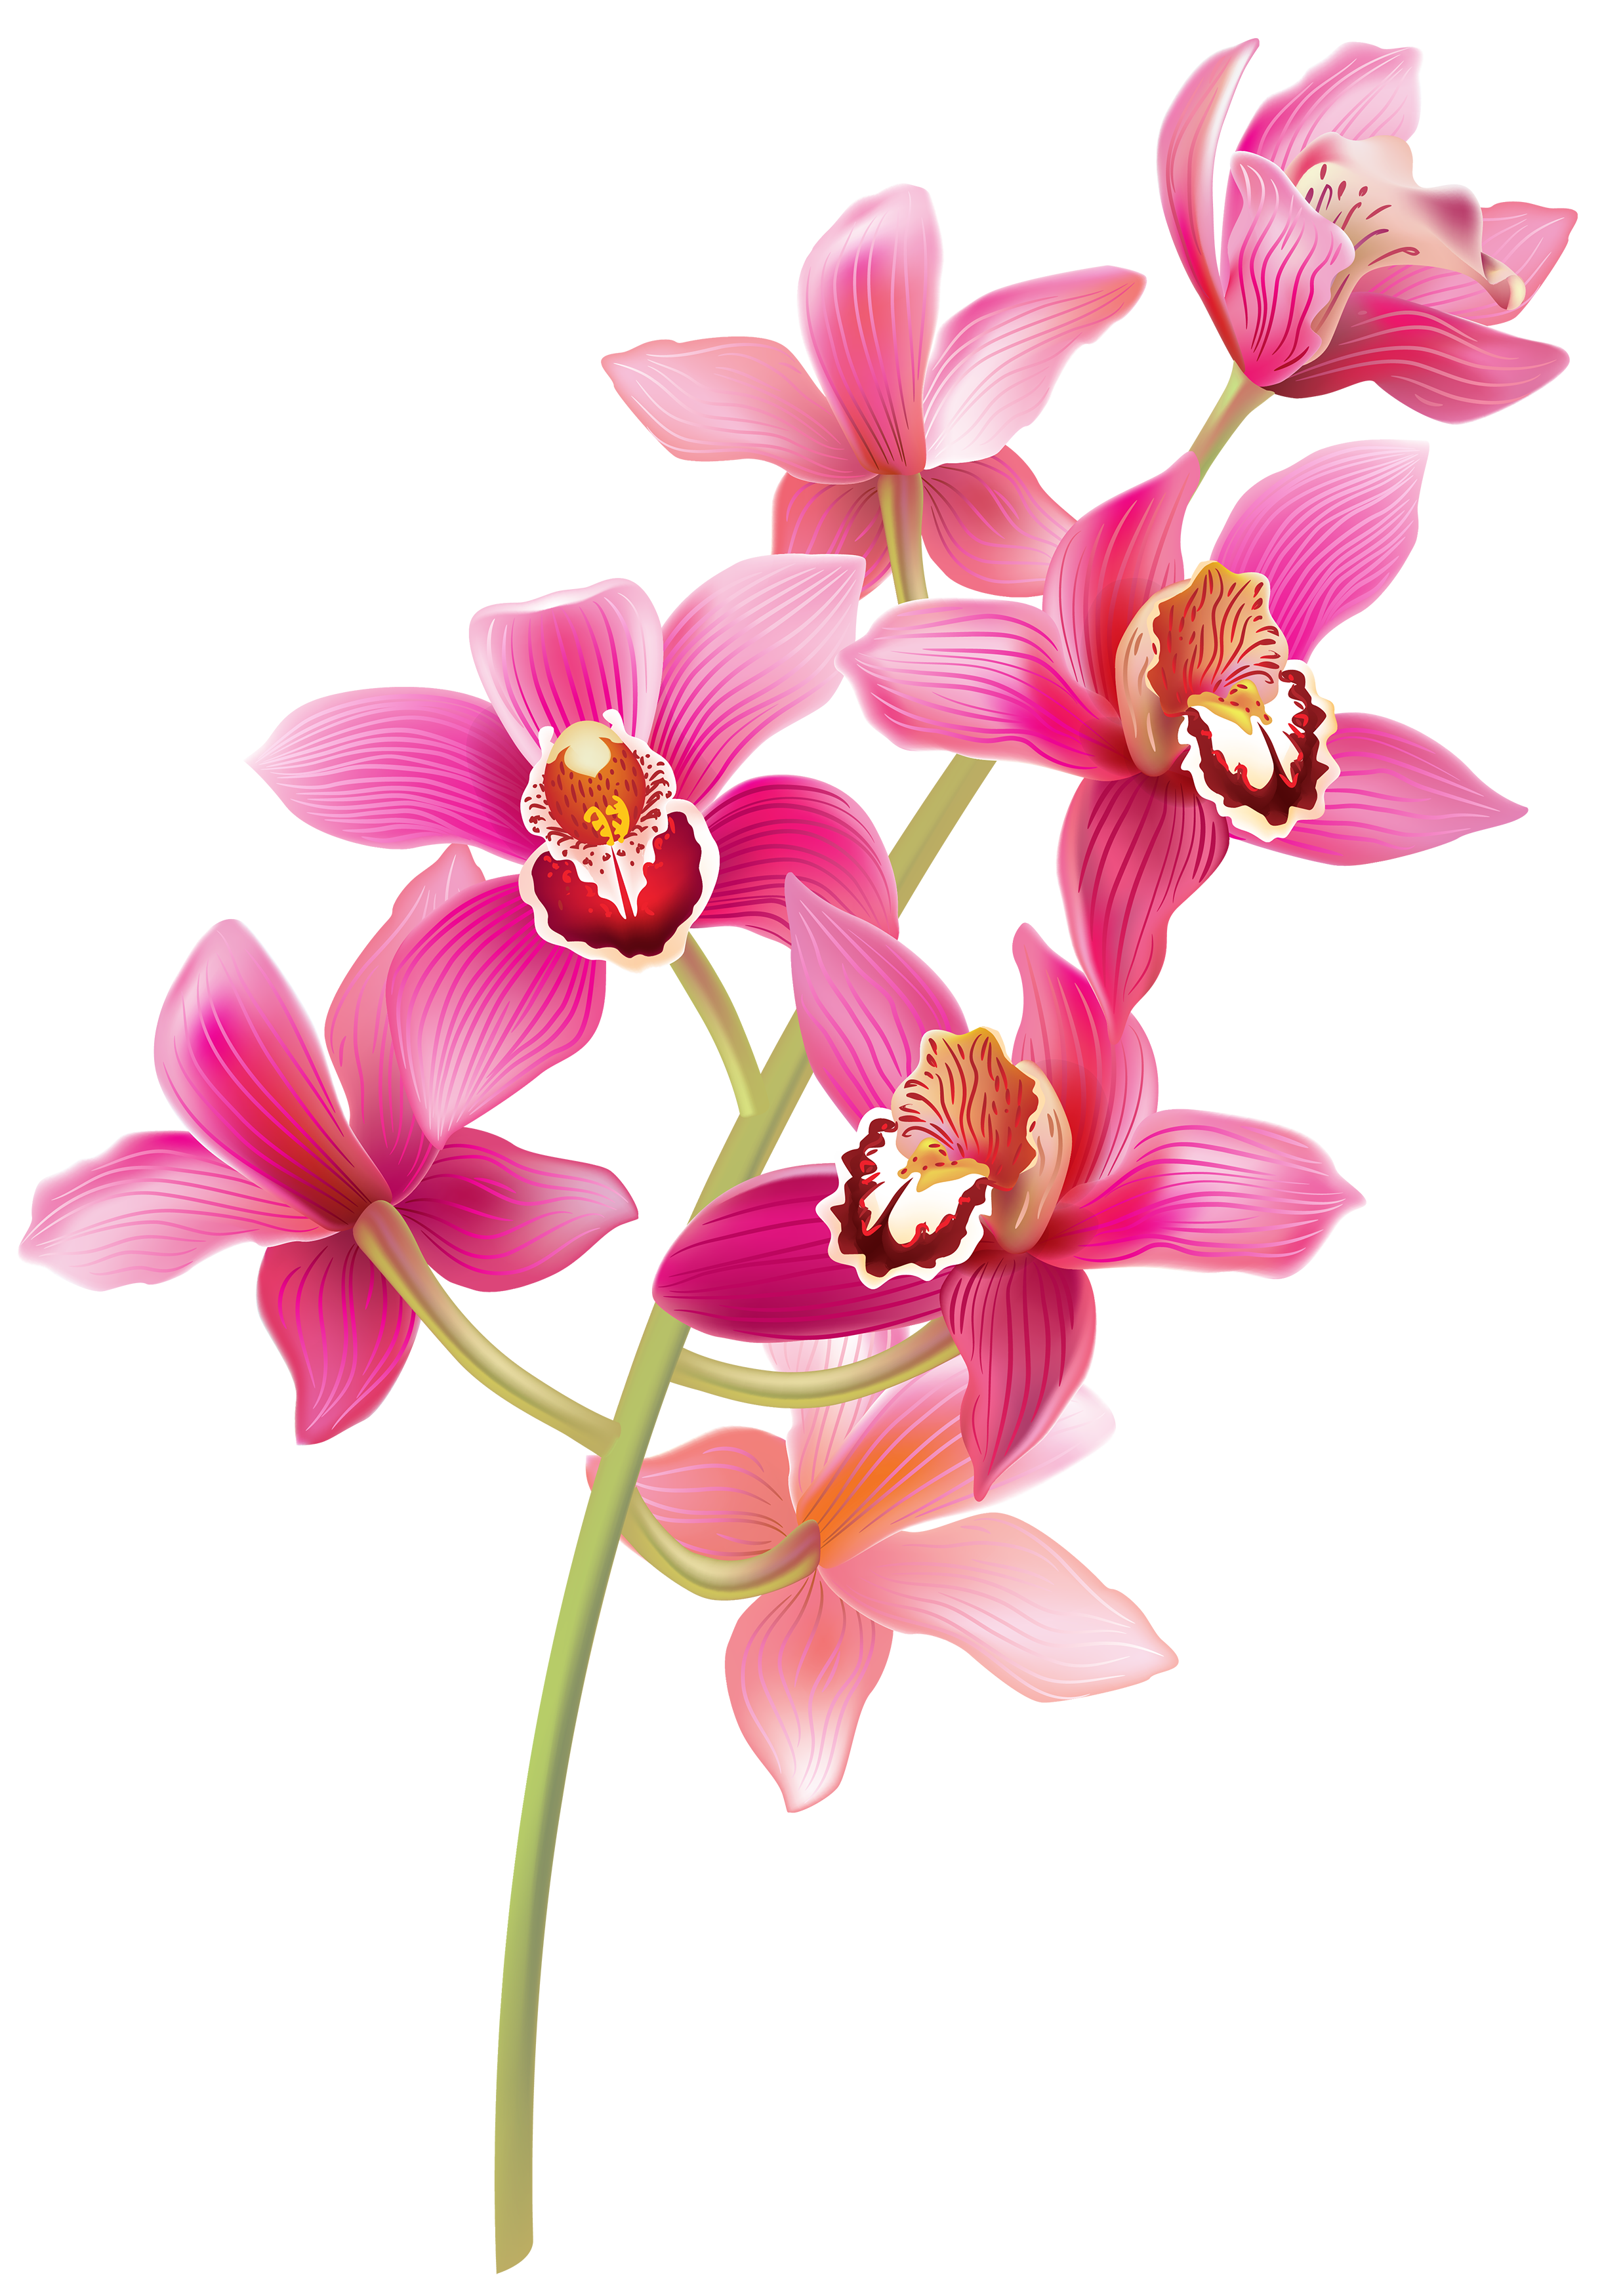 Flower clipart with stem clip royalty free Stem Pink Orchids PNG Clipart - Best WEB Clipart clip royalty free